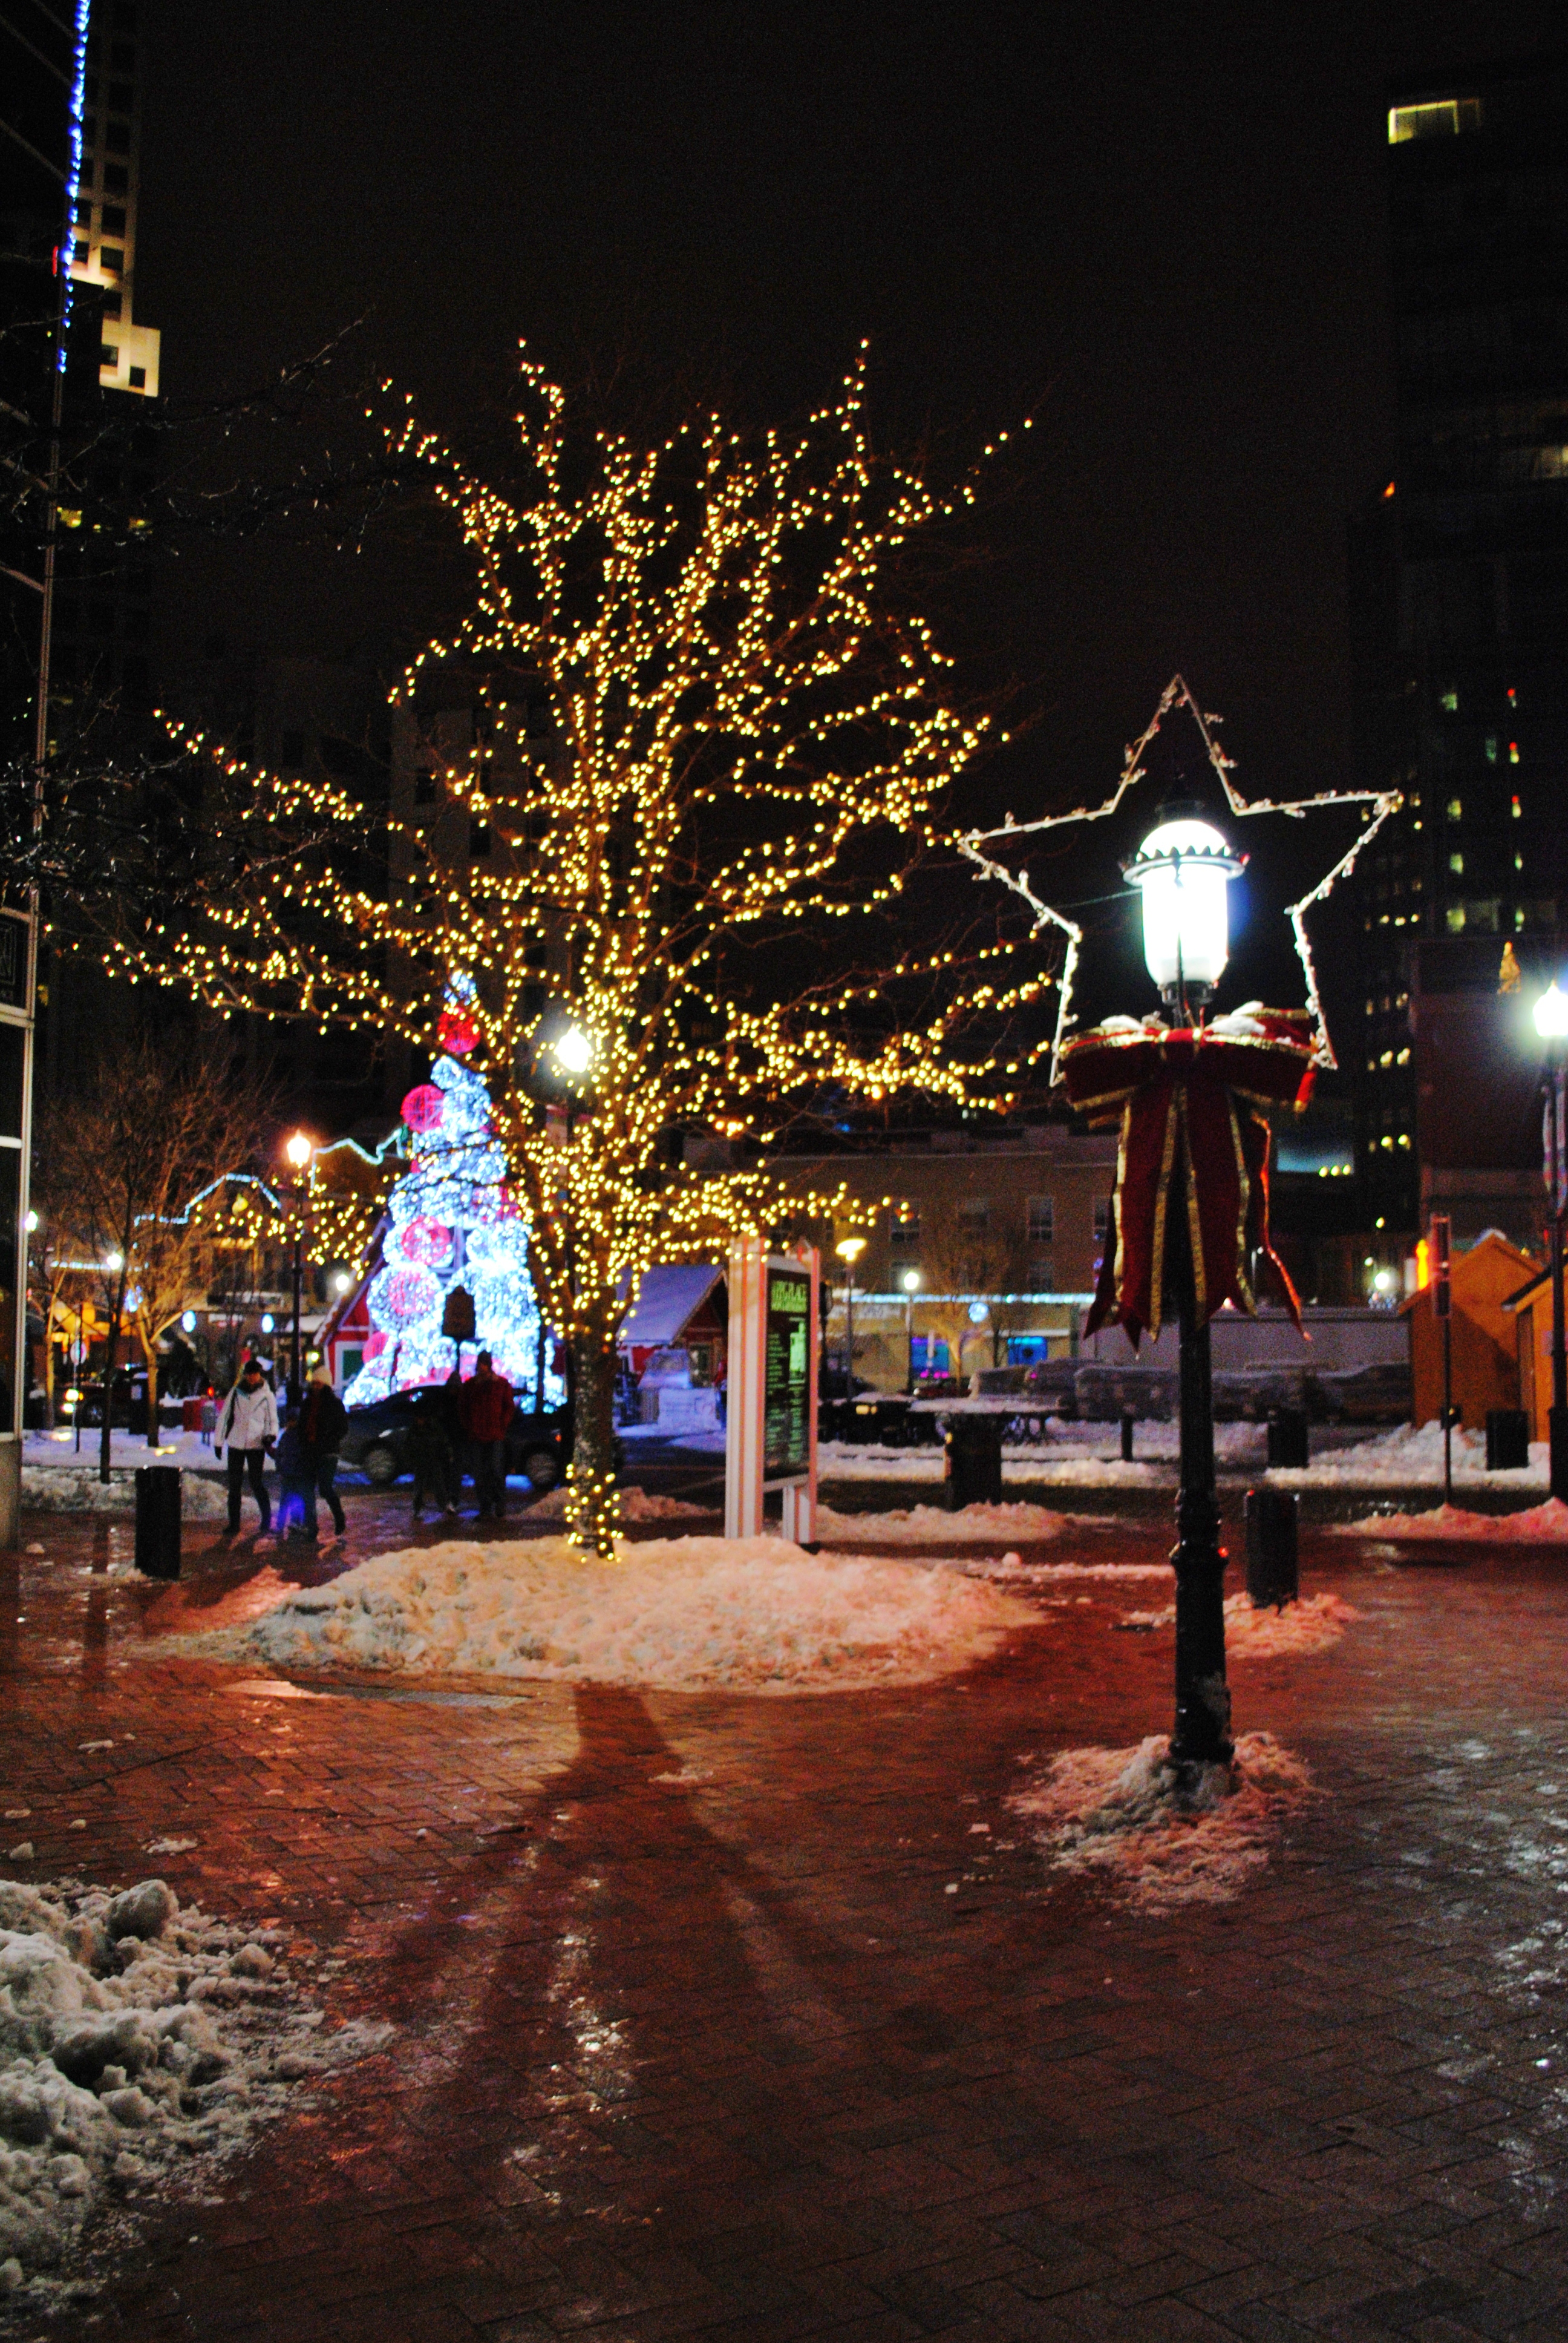 Holiday Travels: Pittsburgh at Christmas | The Suitcase Scholar